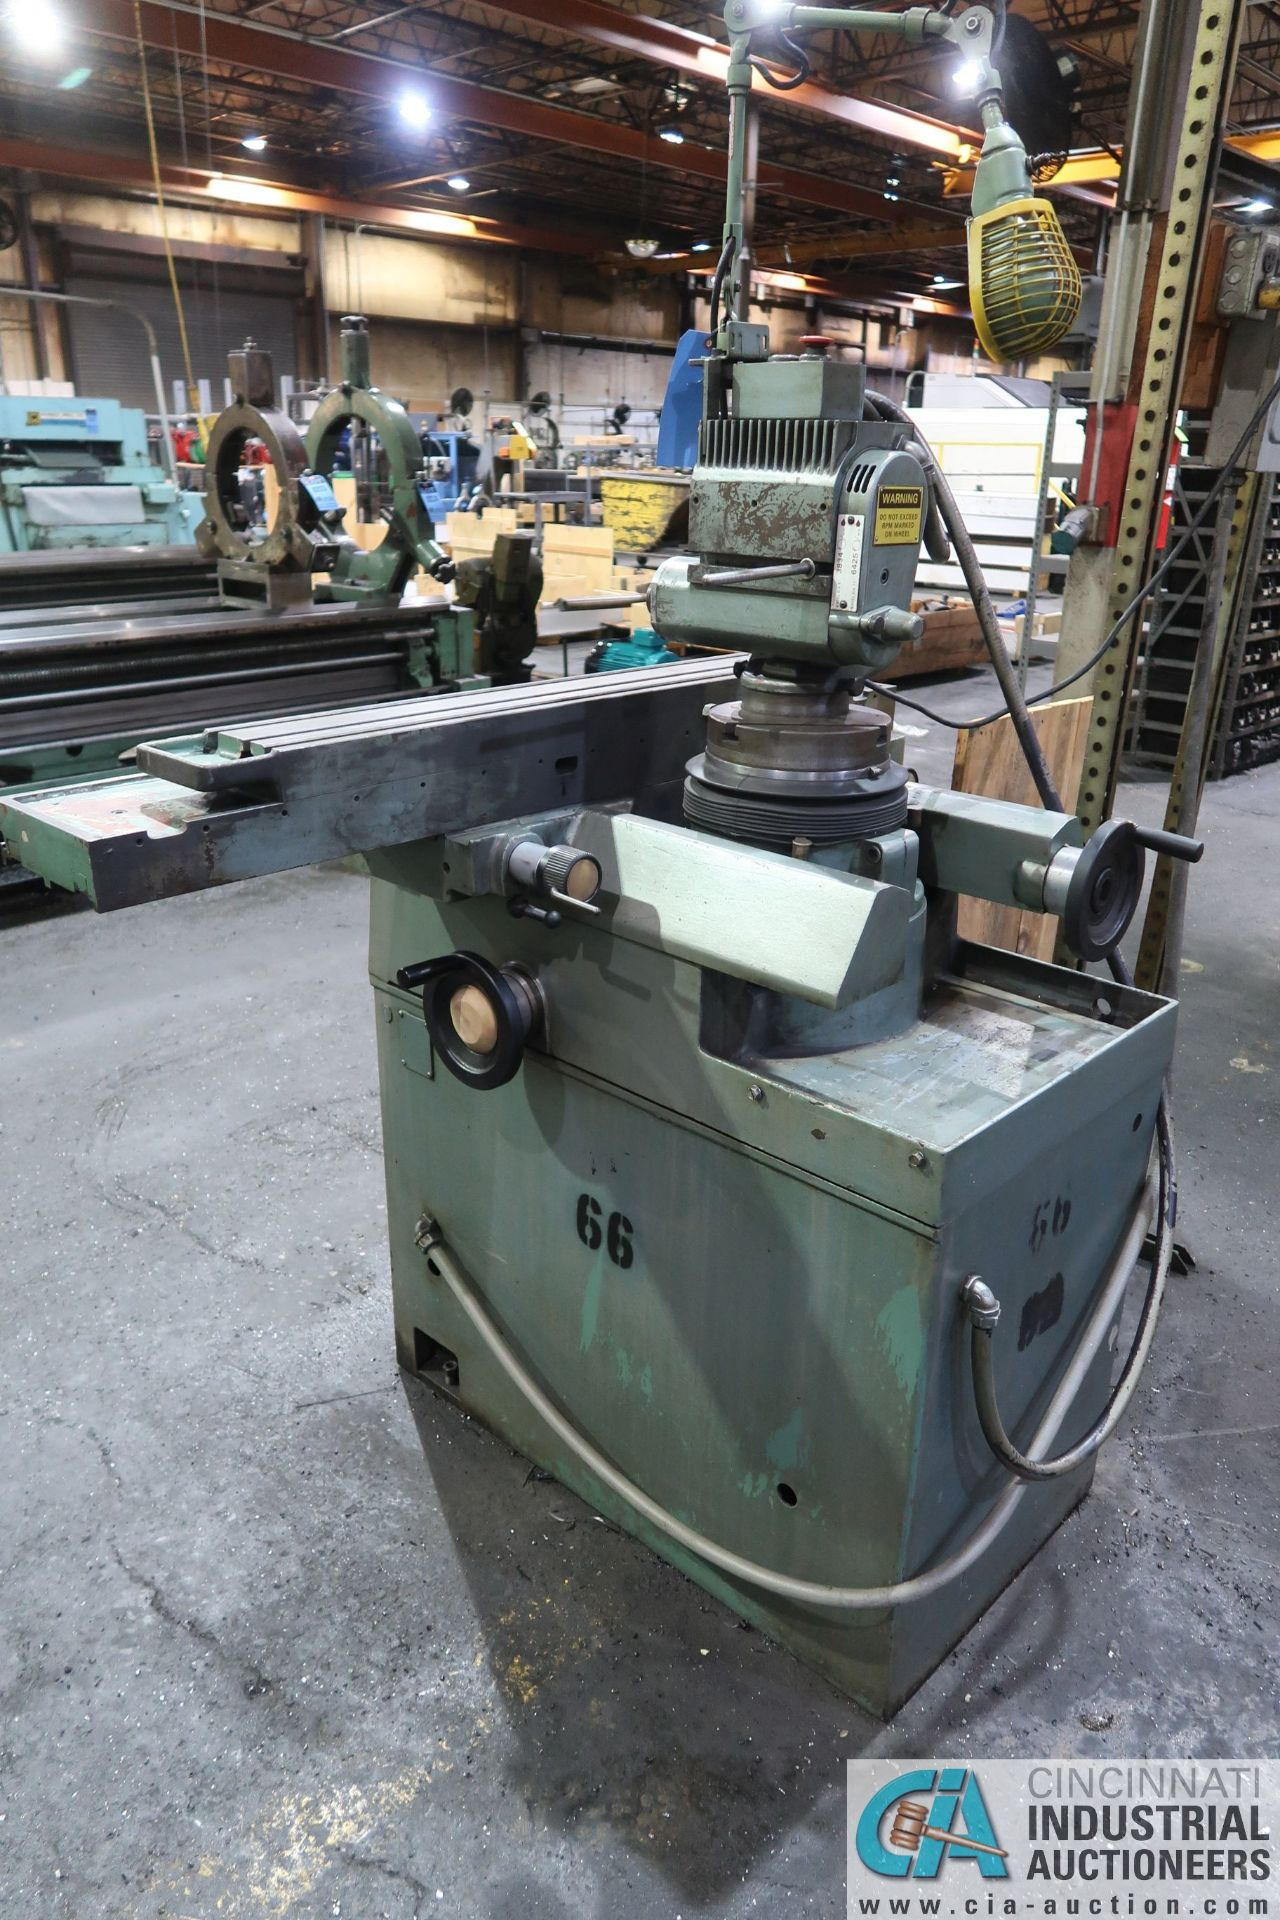 CINCINNATI TYPE MT TOOL GRINDER; S/N 1D2F1ABF-15, WITH (1) WOOD CRATE MISCELLANEOUS FIXTURES (NEW - Image 3 of 11